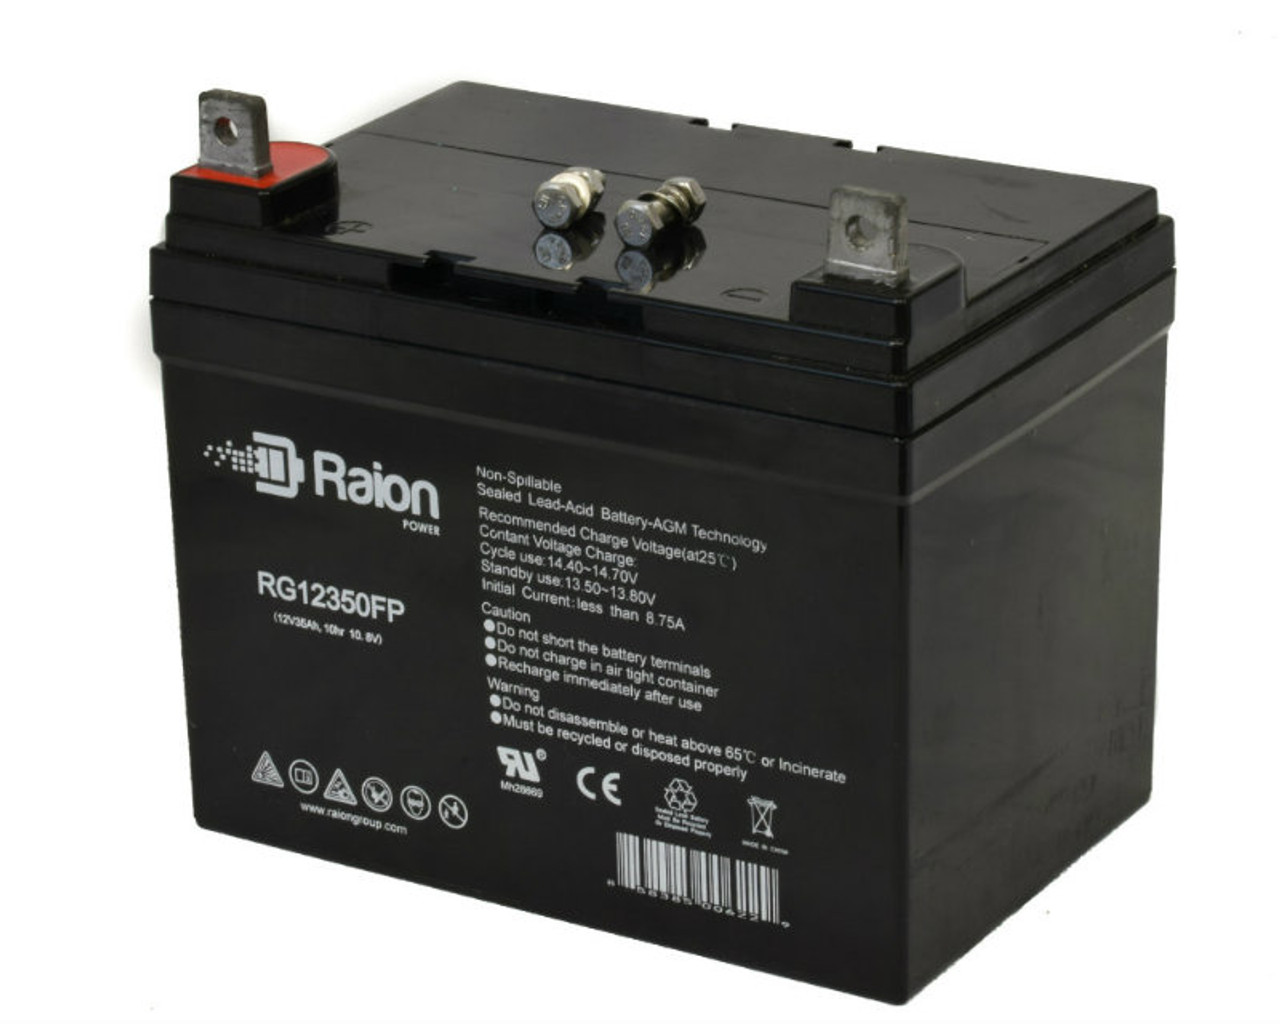 RG12350FP Sealed Lead Acid Battery Pack For Access Point Medical AXS7000 Mobility Scooter